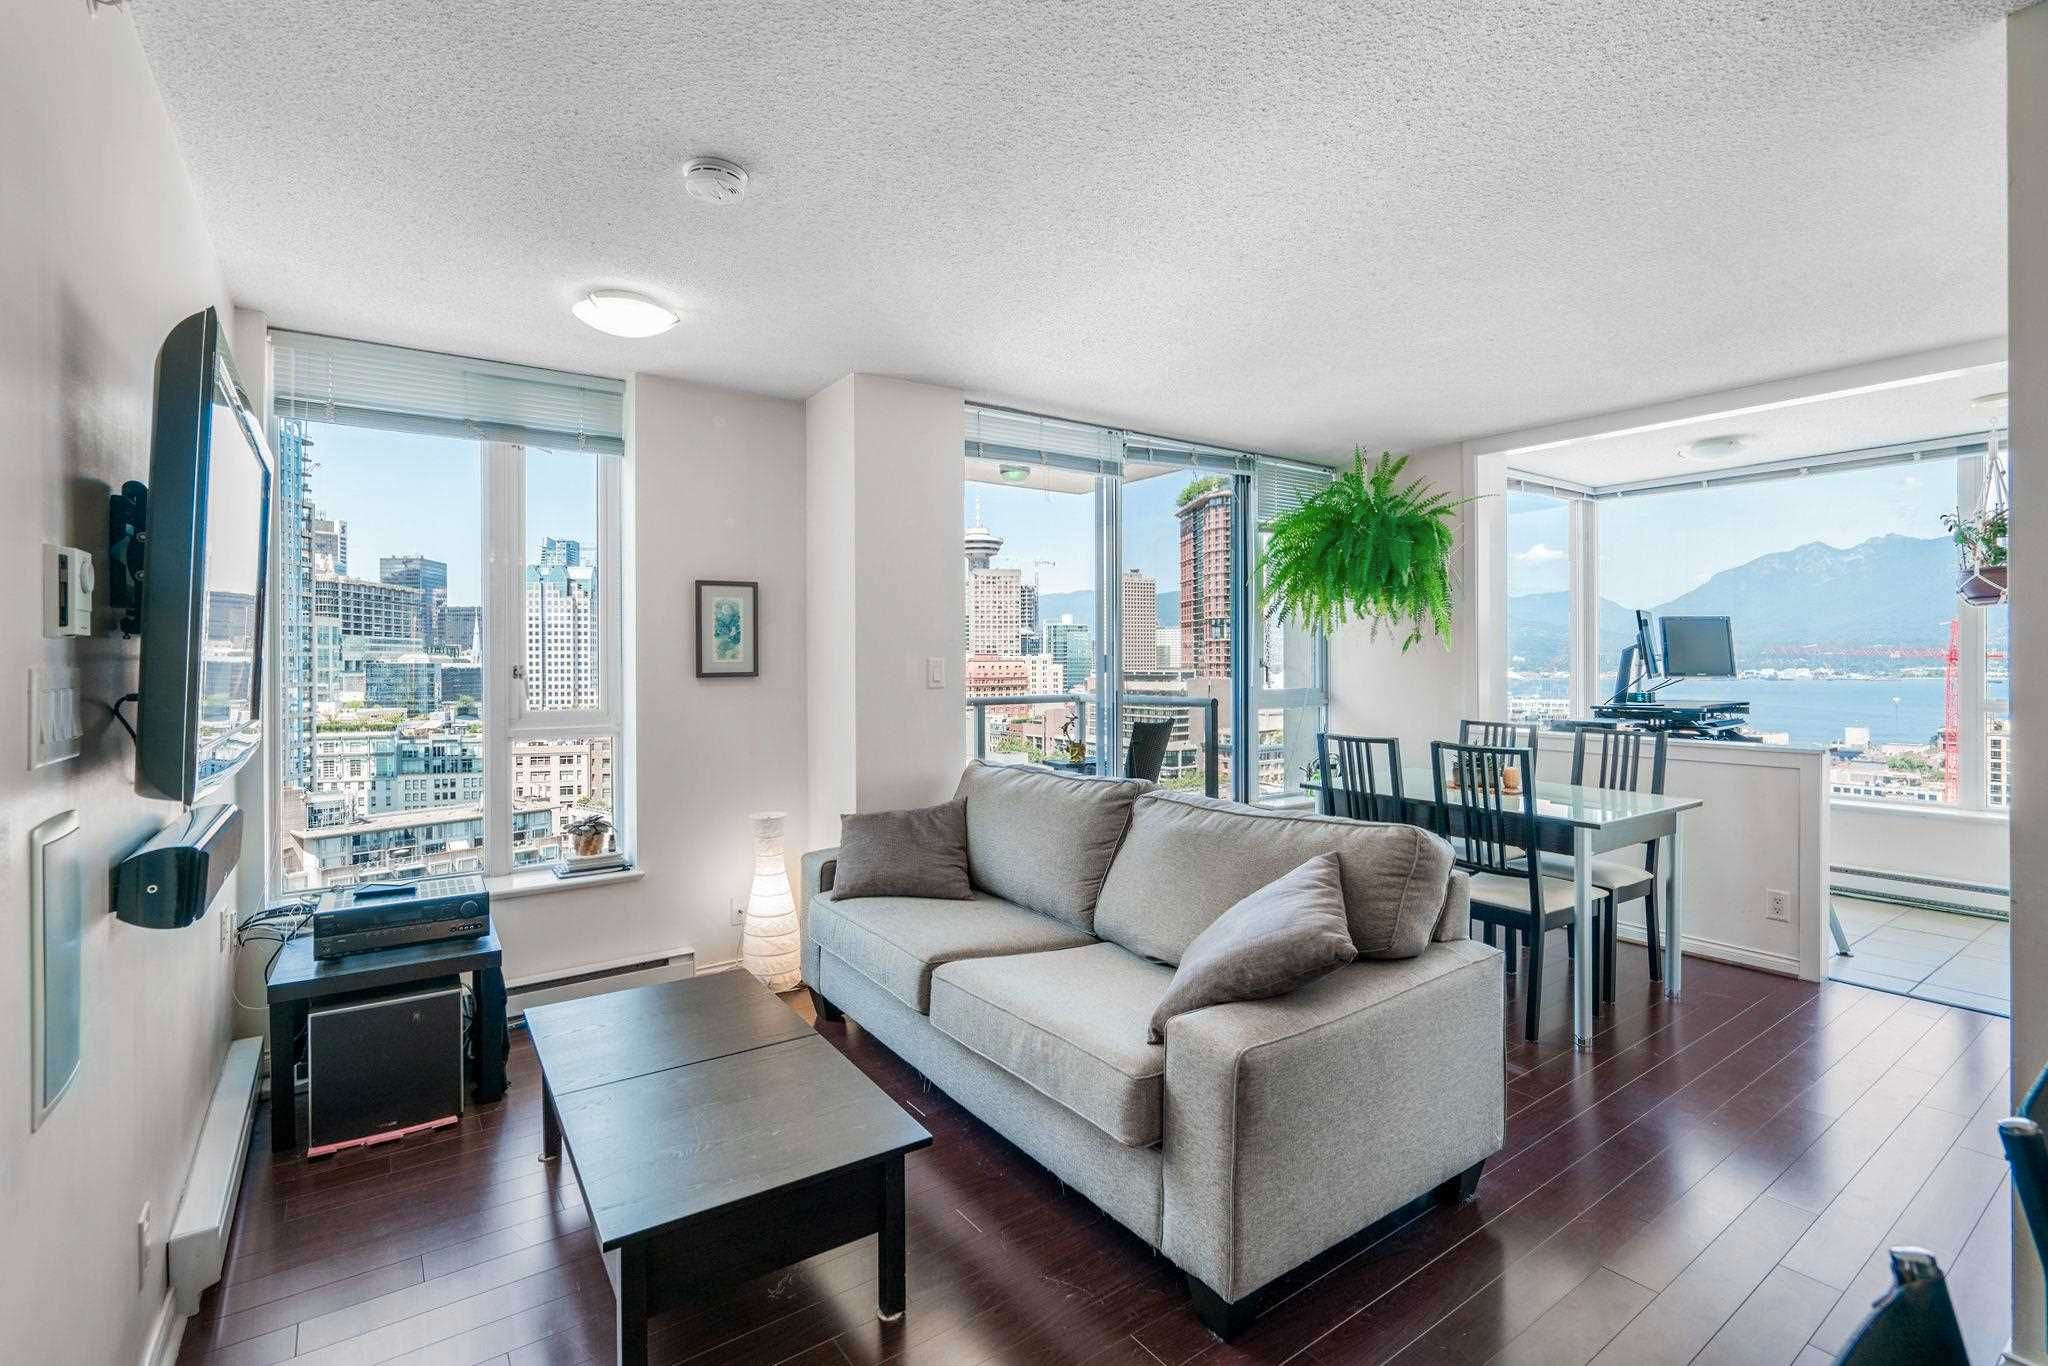 """Main Photo: 2204 550 TAYLOR Street in Vancouver: Downtown VW Condo for sale in """"Taylor"""" (Vancouver West)  : MLS®# R2621332"""